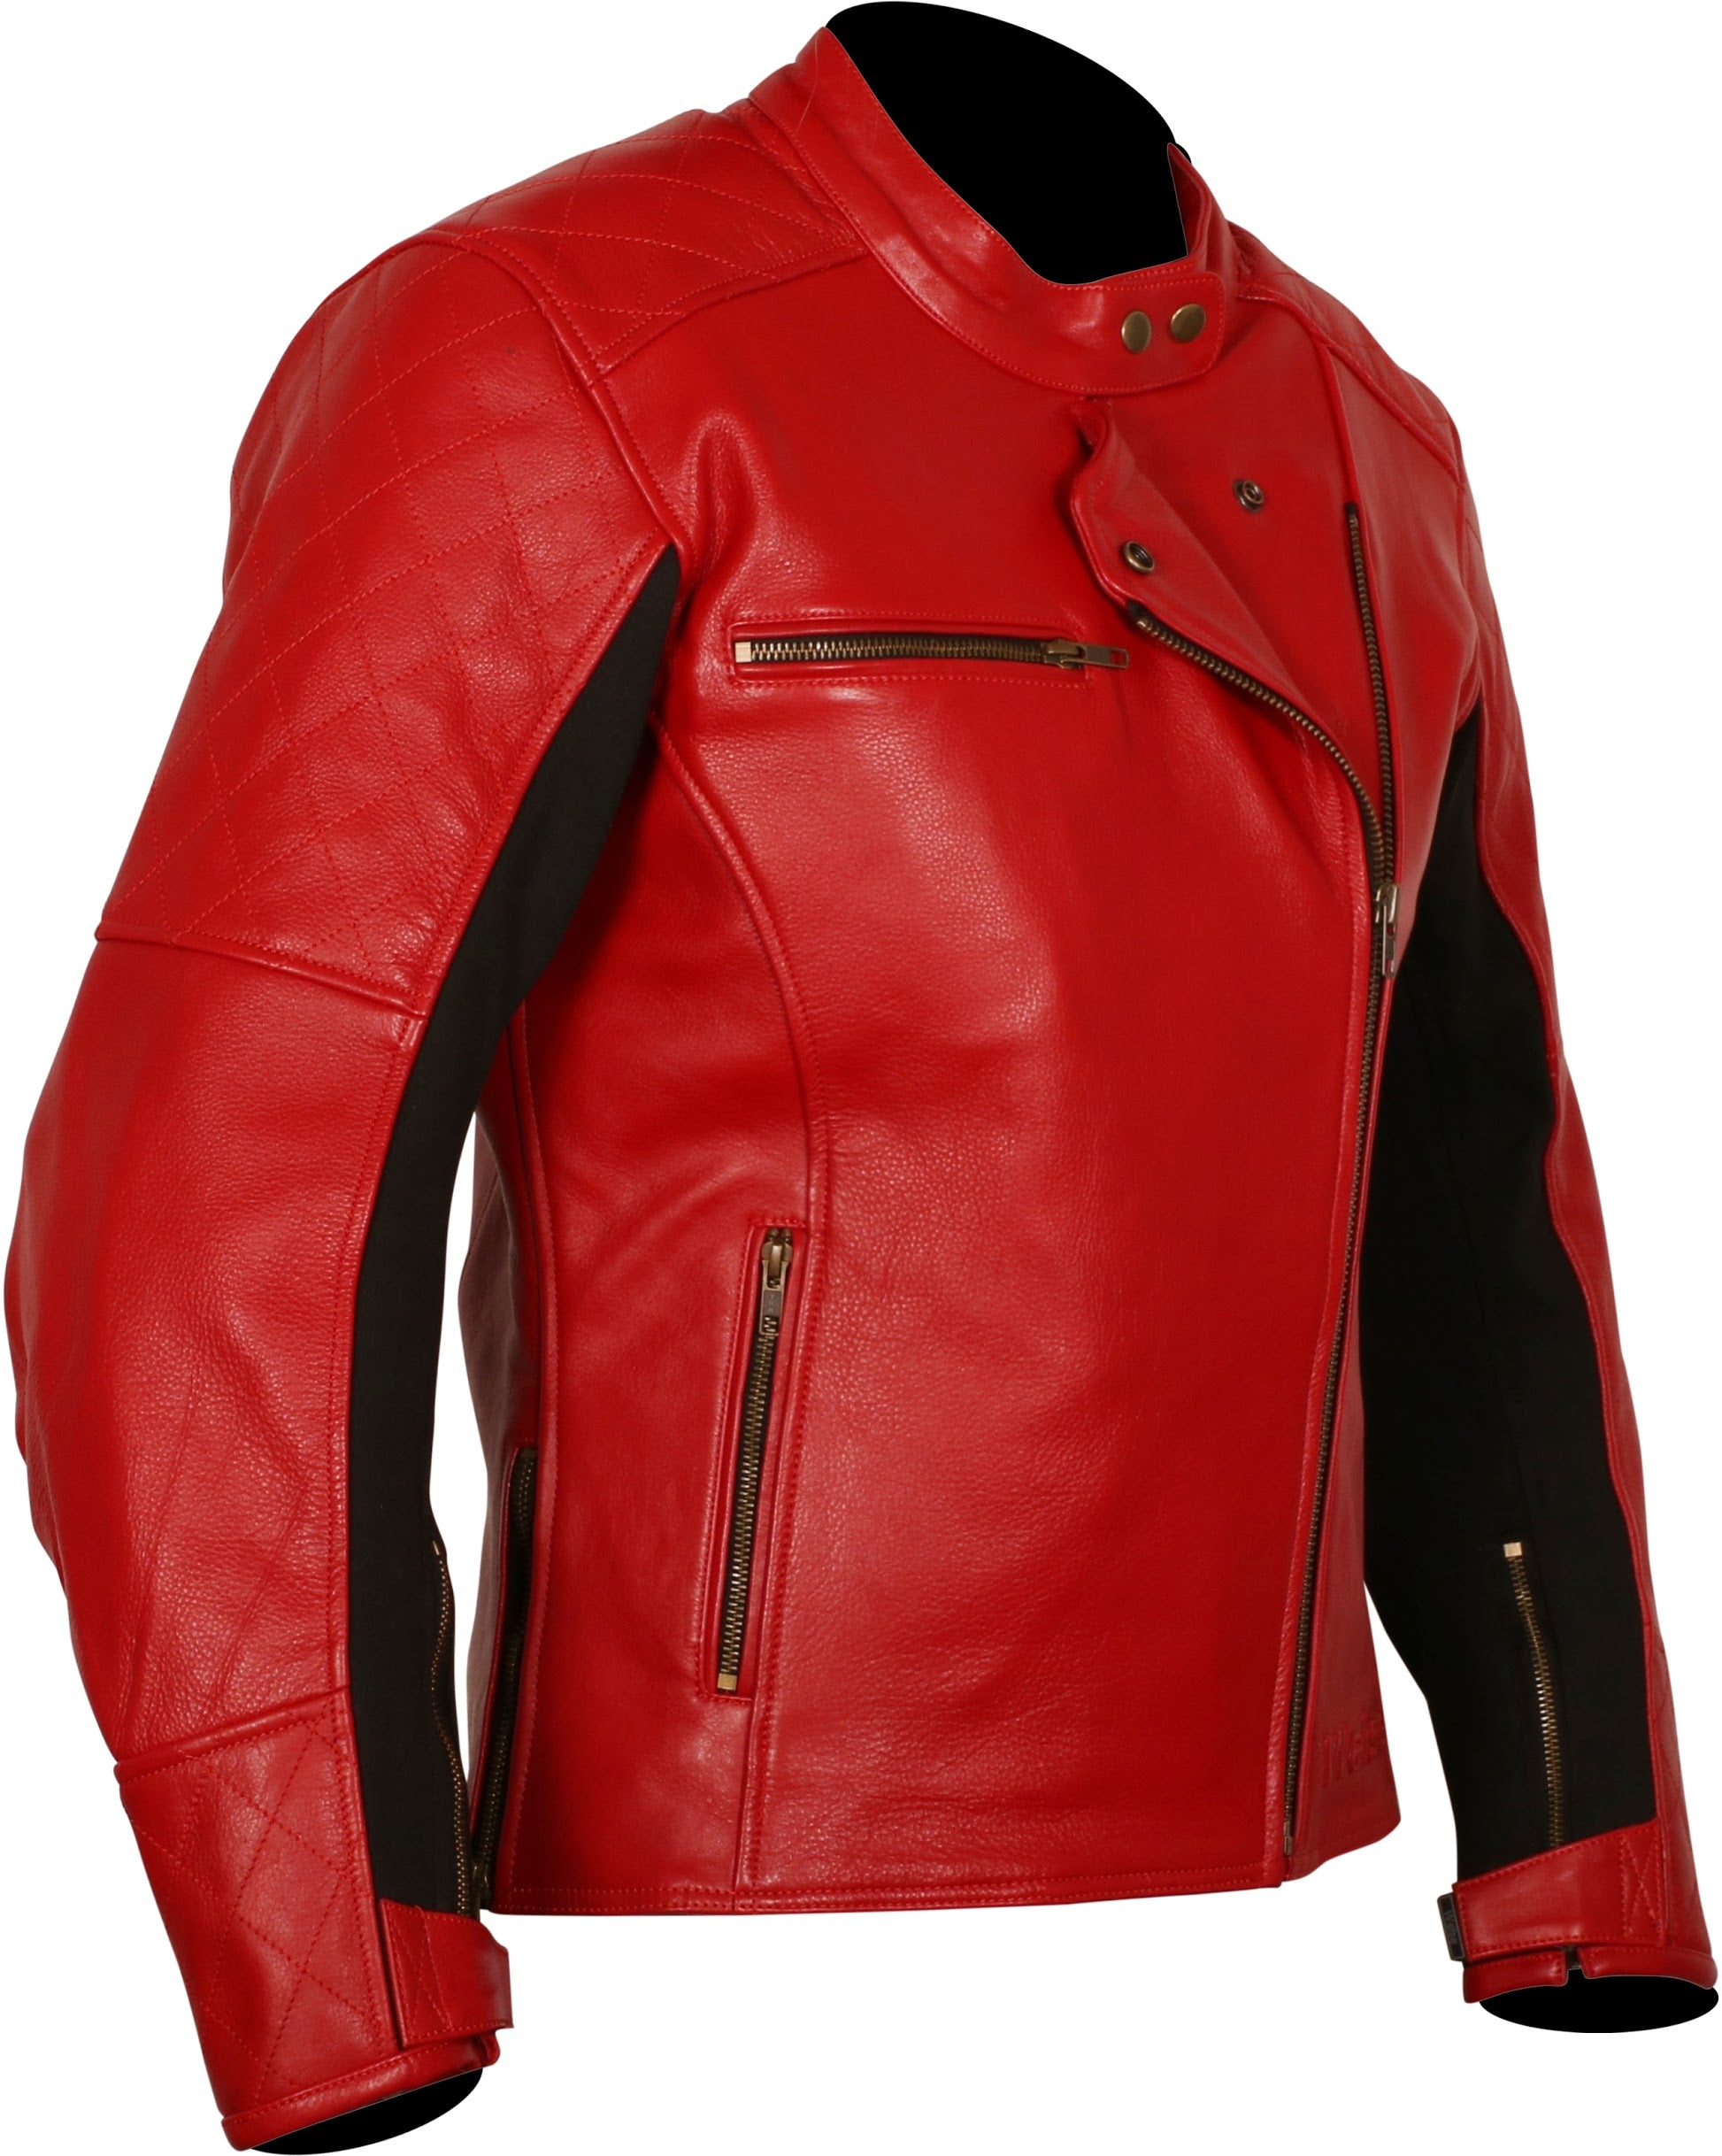 Weise Ladies Jacket - Chicago, Ladies Jacket, Weise - Averys Motorcycles